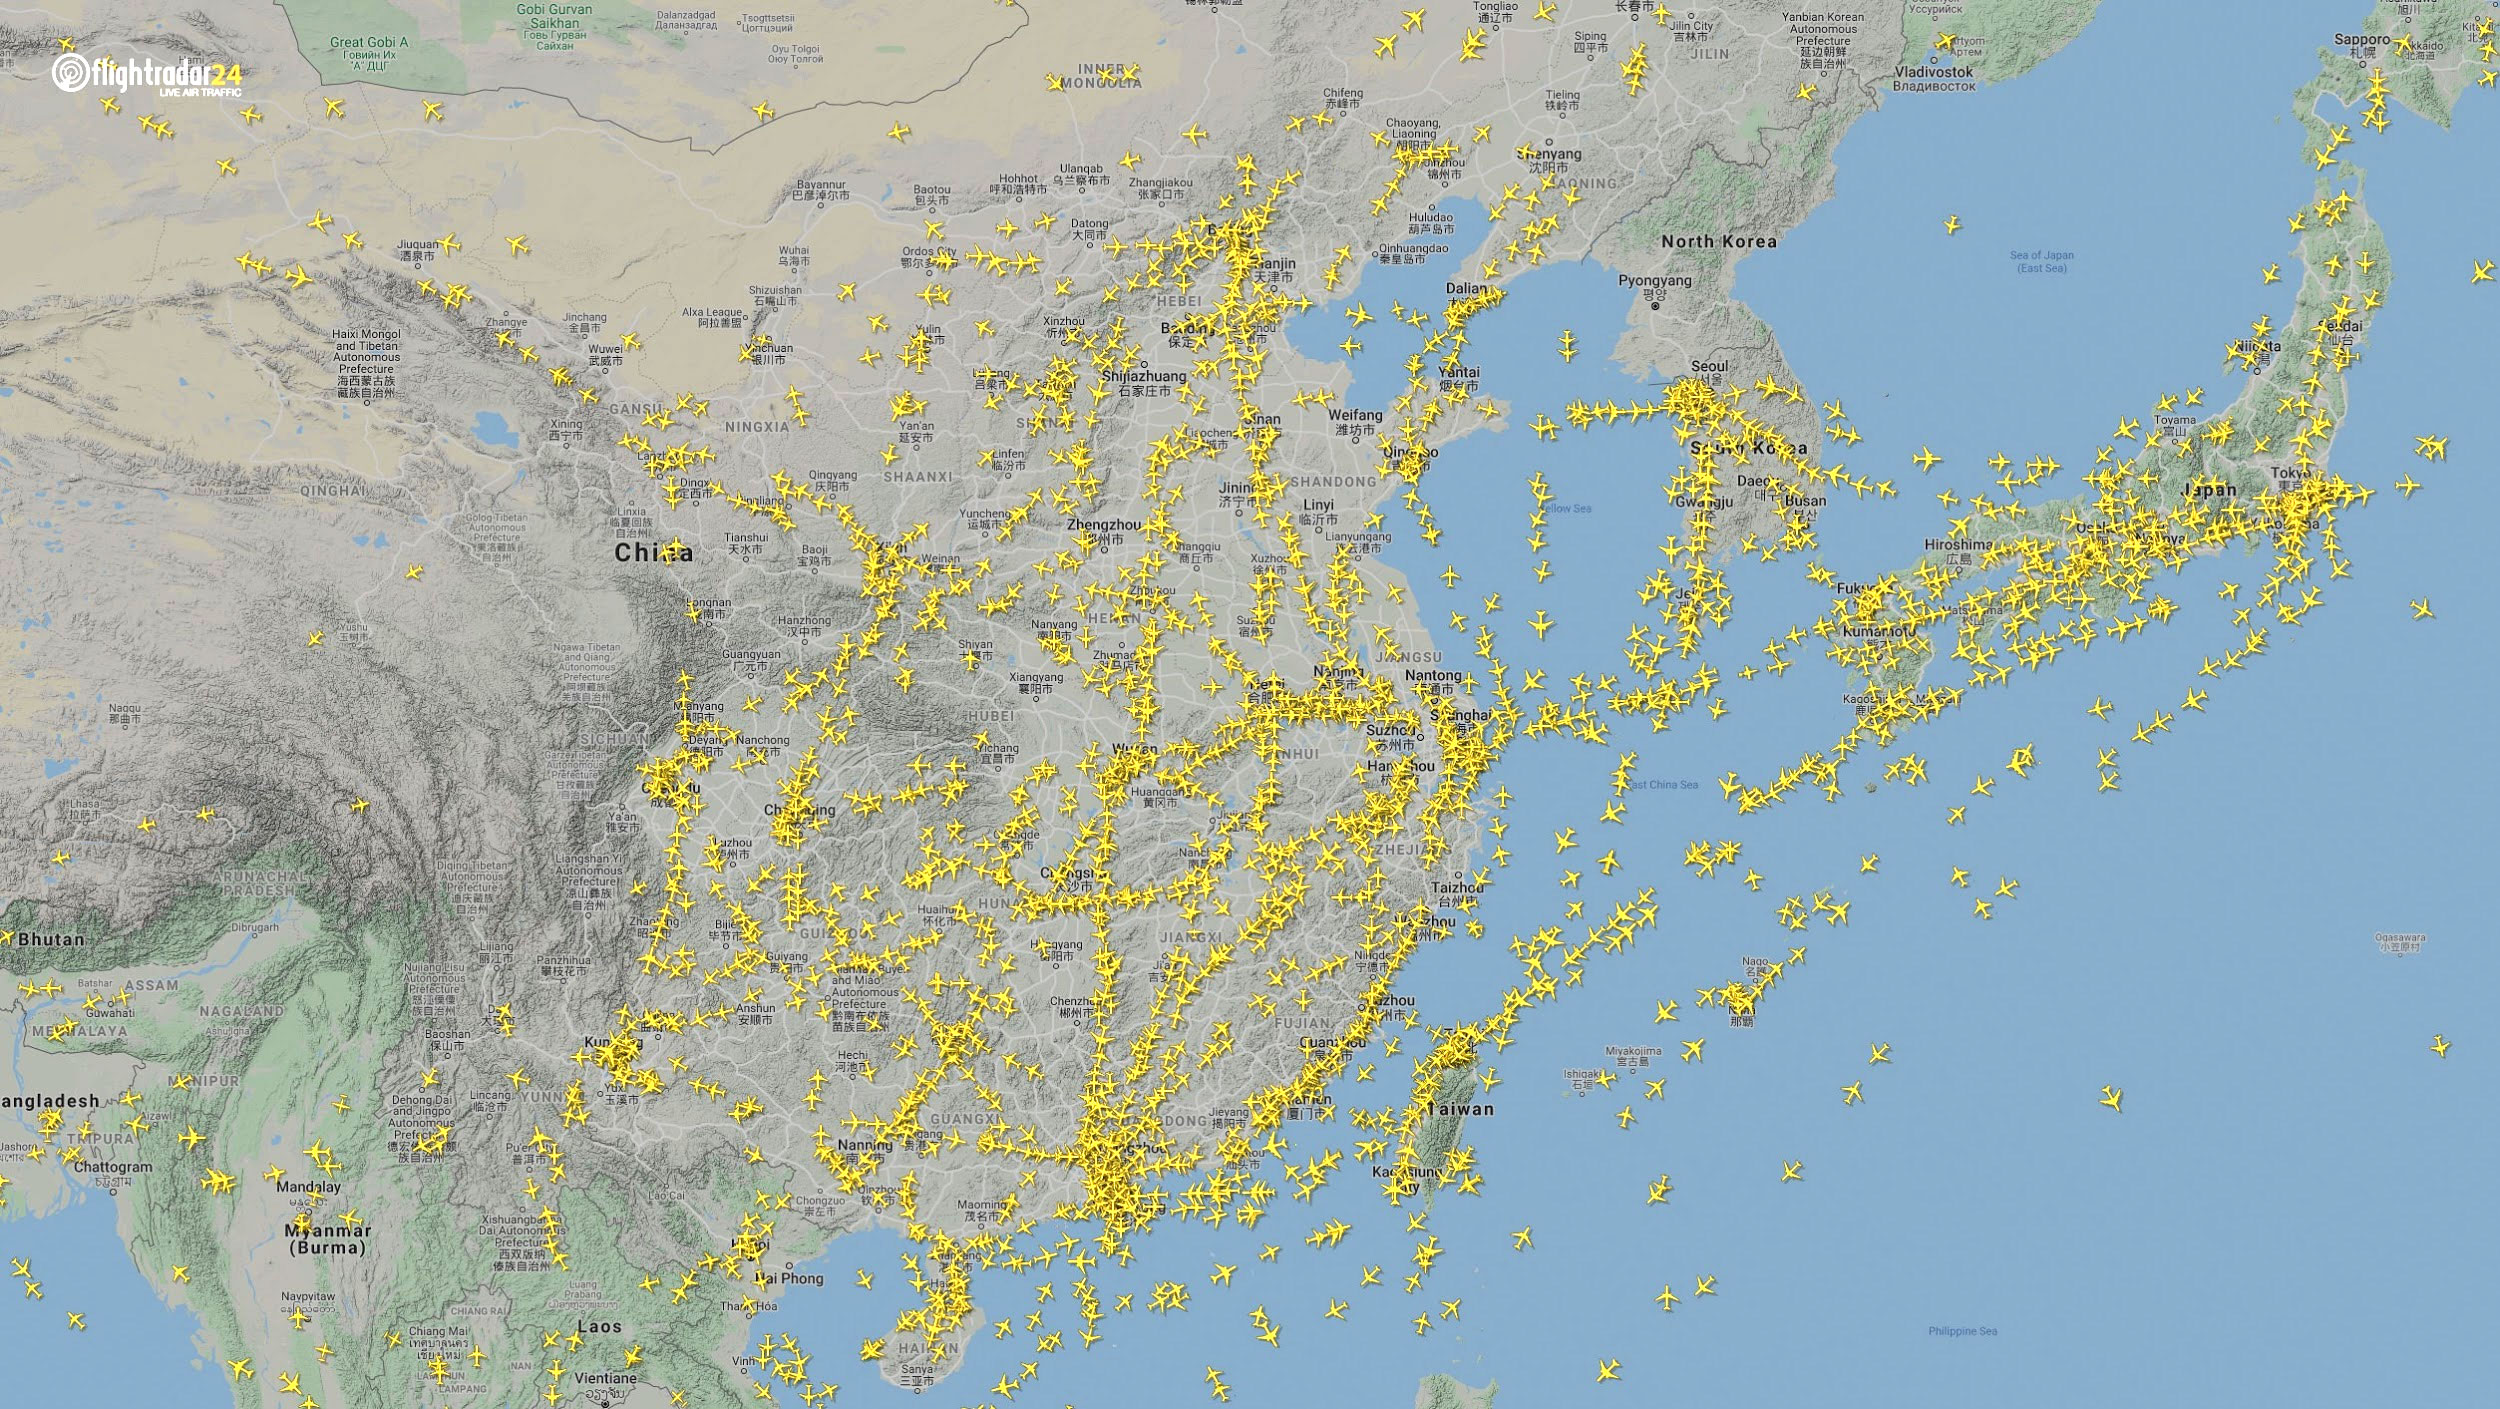 Air traffic over East Asia January 7. (Source: Flightradar24)